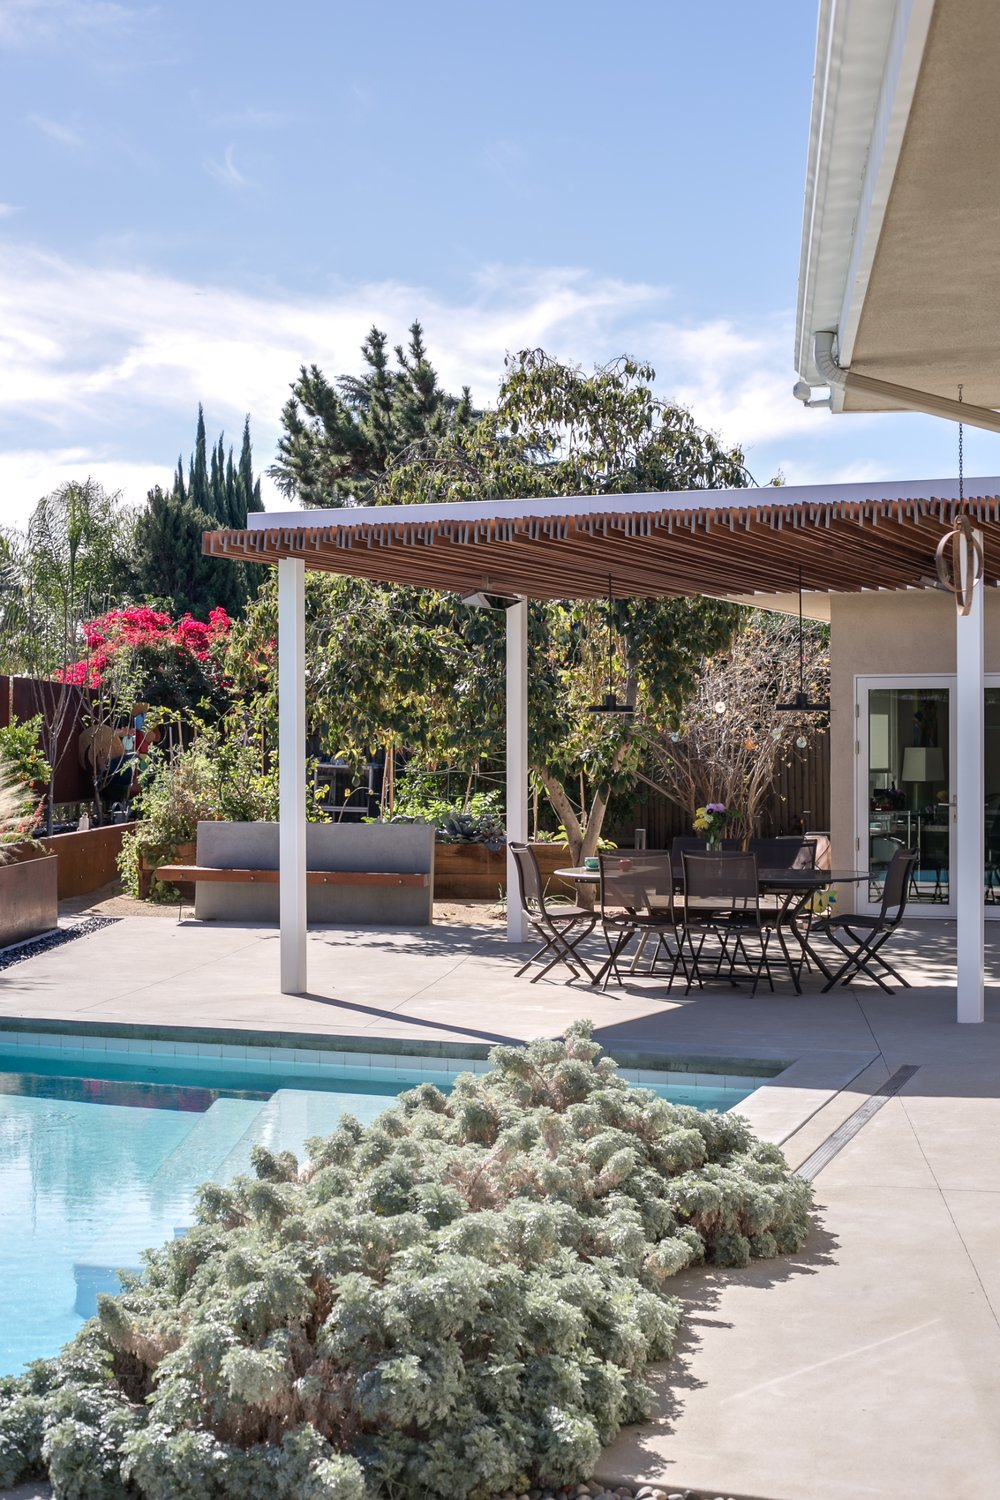 Mid-Century-Modern-Exterior-Pool-Firepit-Concrete-Wall-Seat-Pergola.jpg